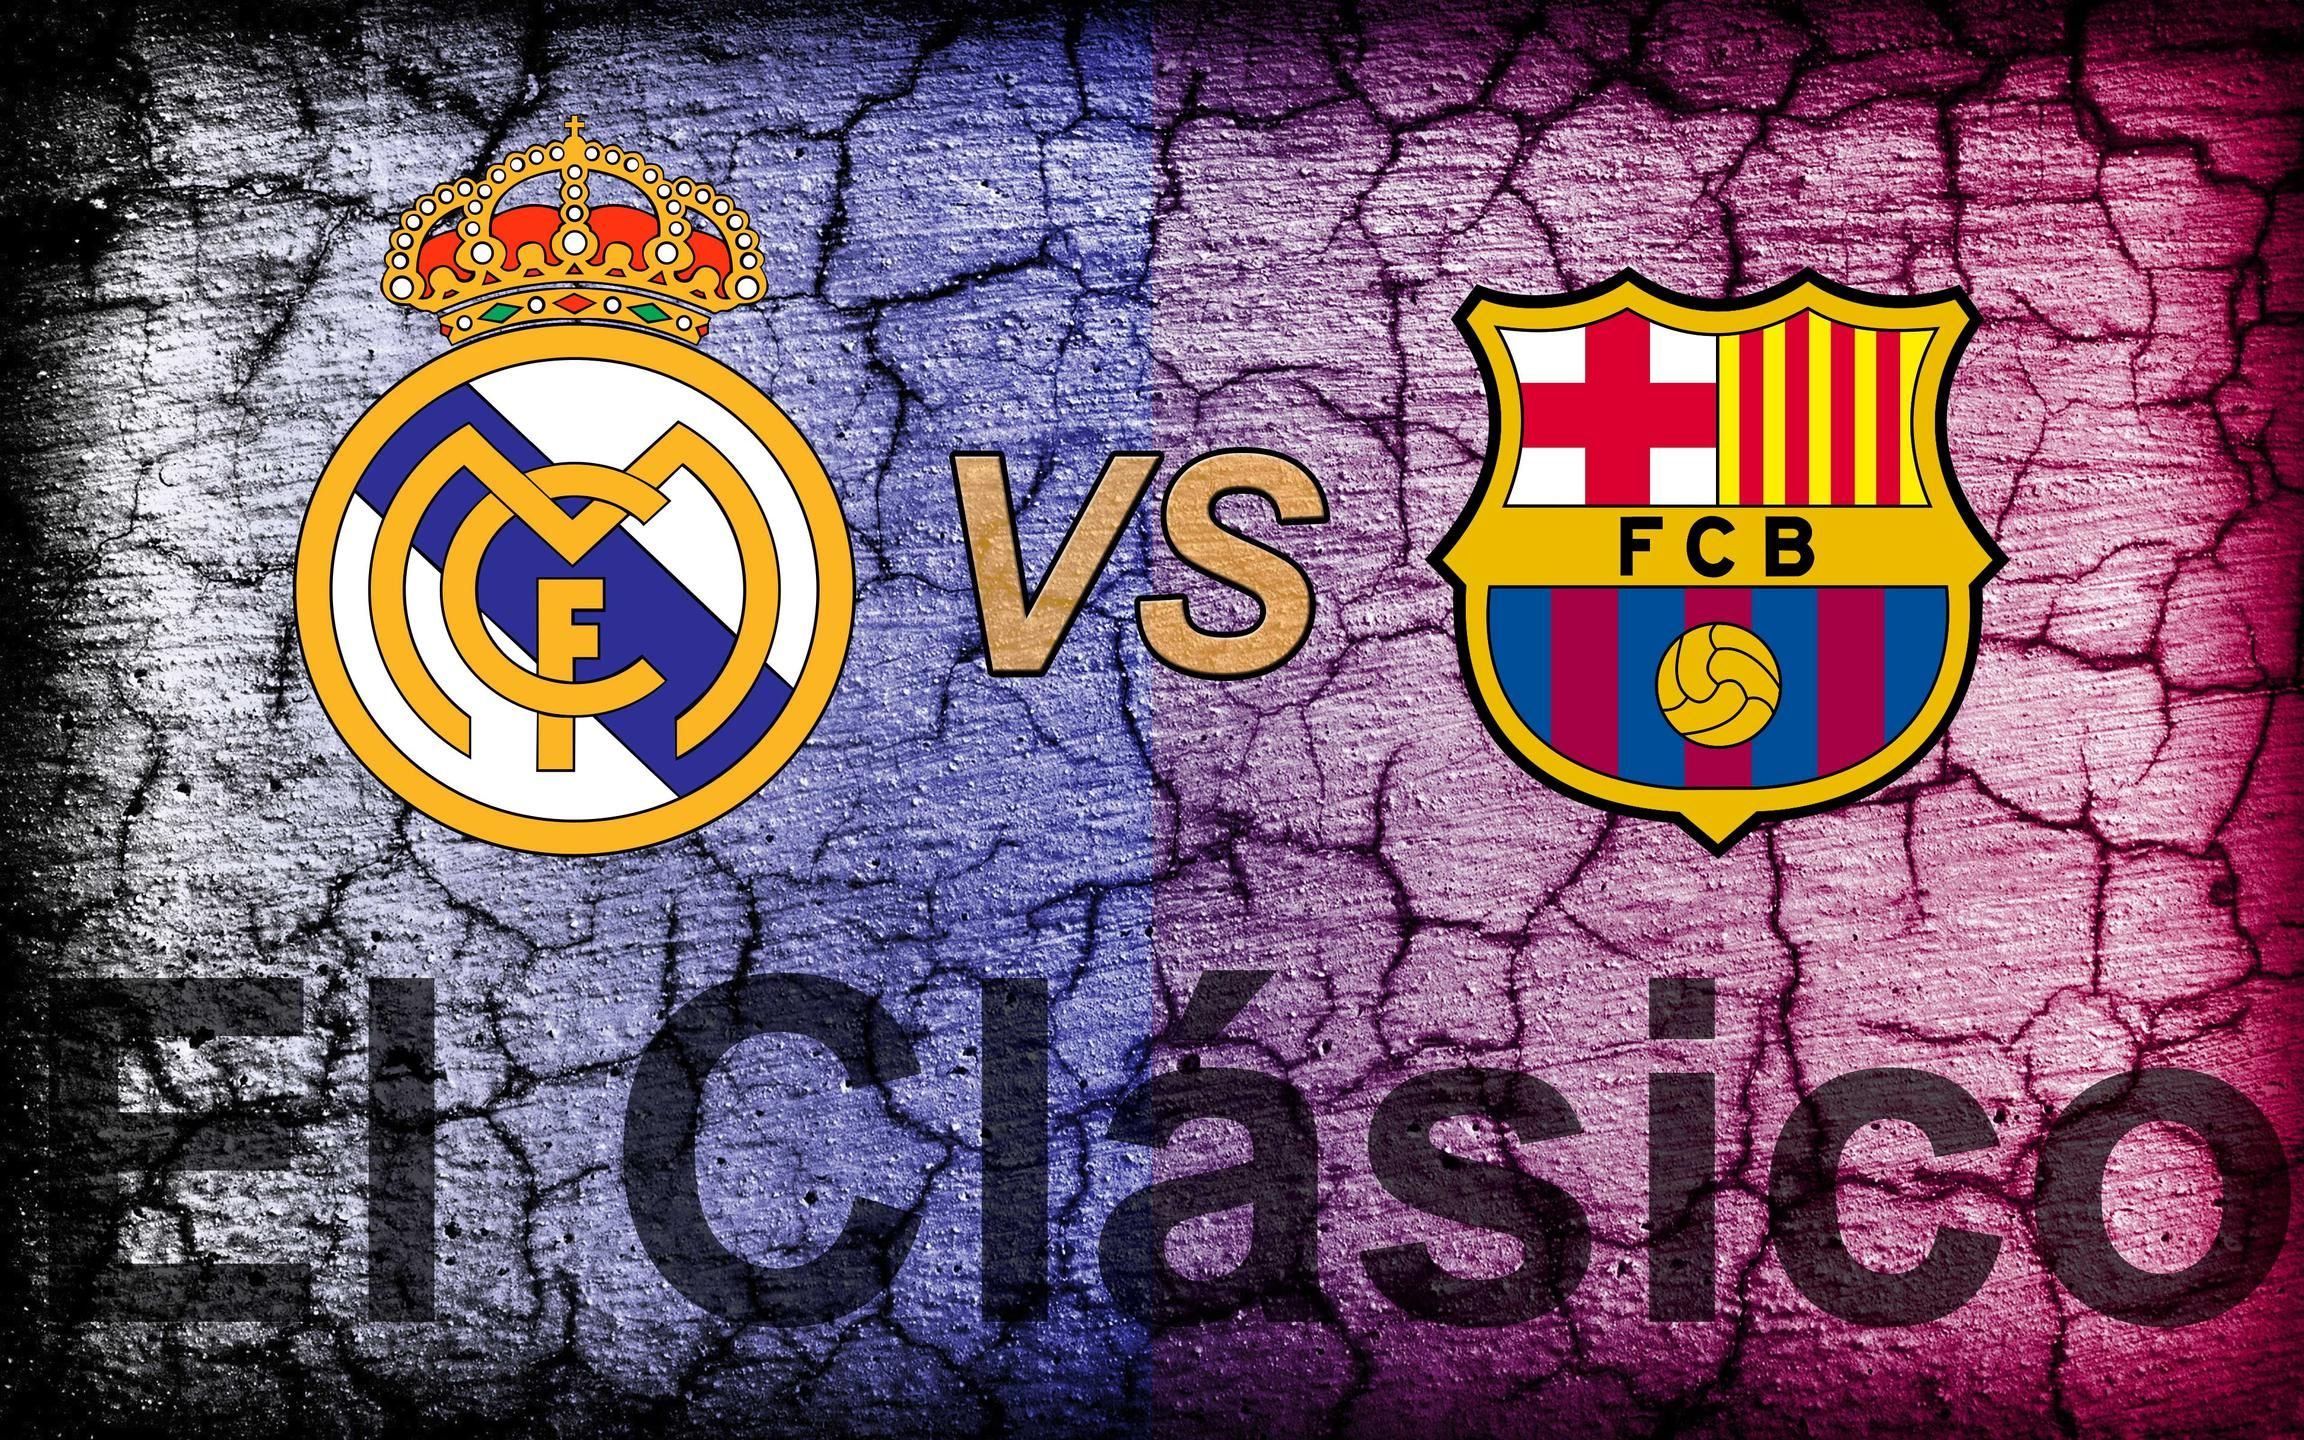 Barcelona And Real Madrid Wallpaper 800 500 Real Madrid Vs Barcelona Wallpapers 37 Wallpapers Adorable Real Madrid Wallpapers Real Madrid Madrid Wallpaper